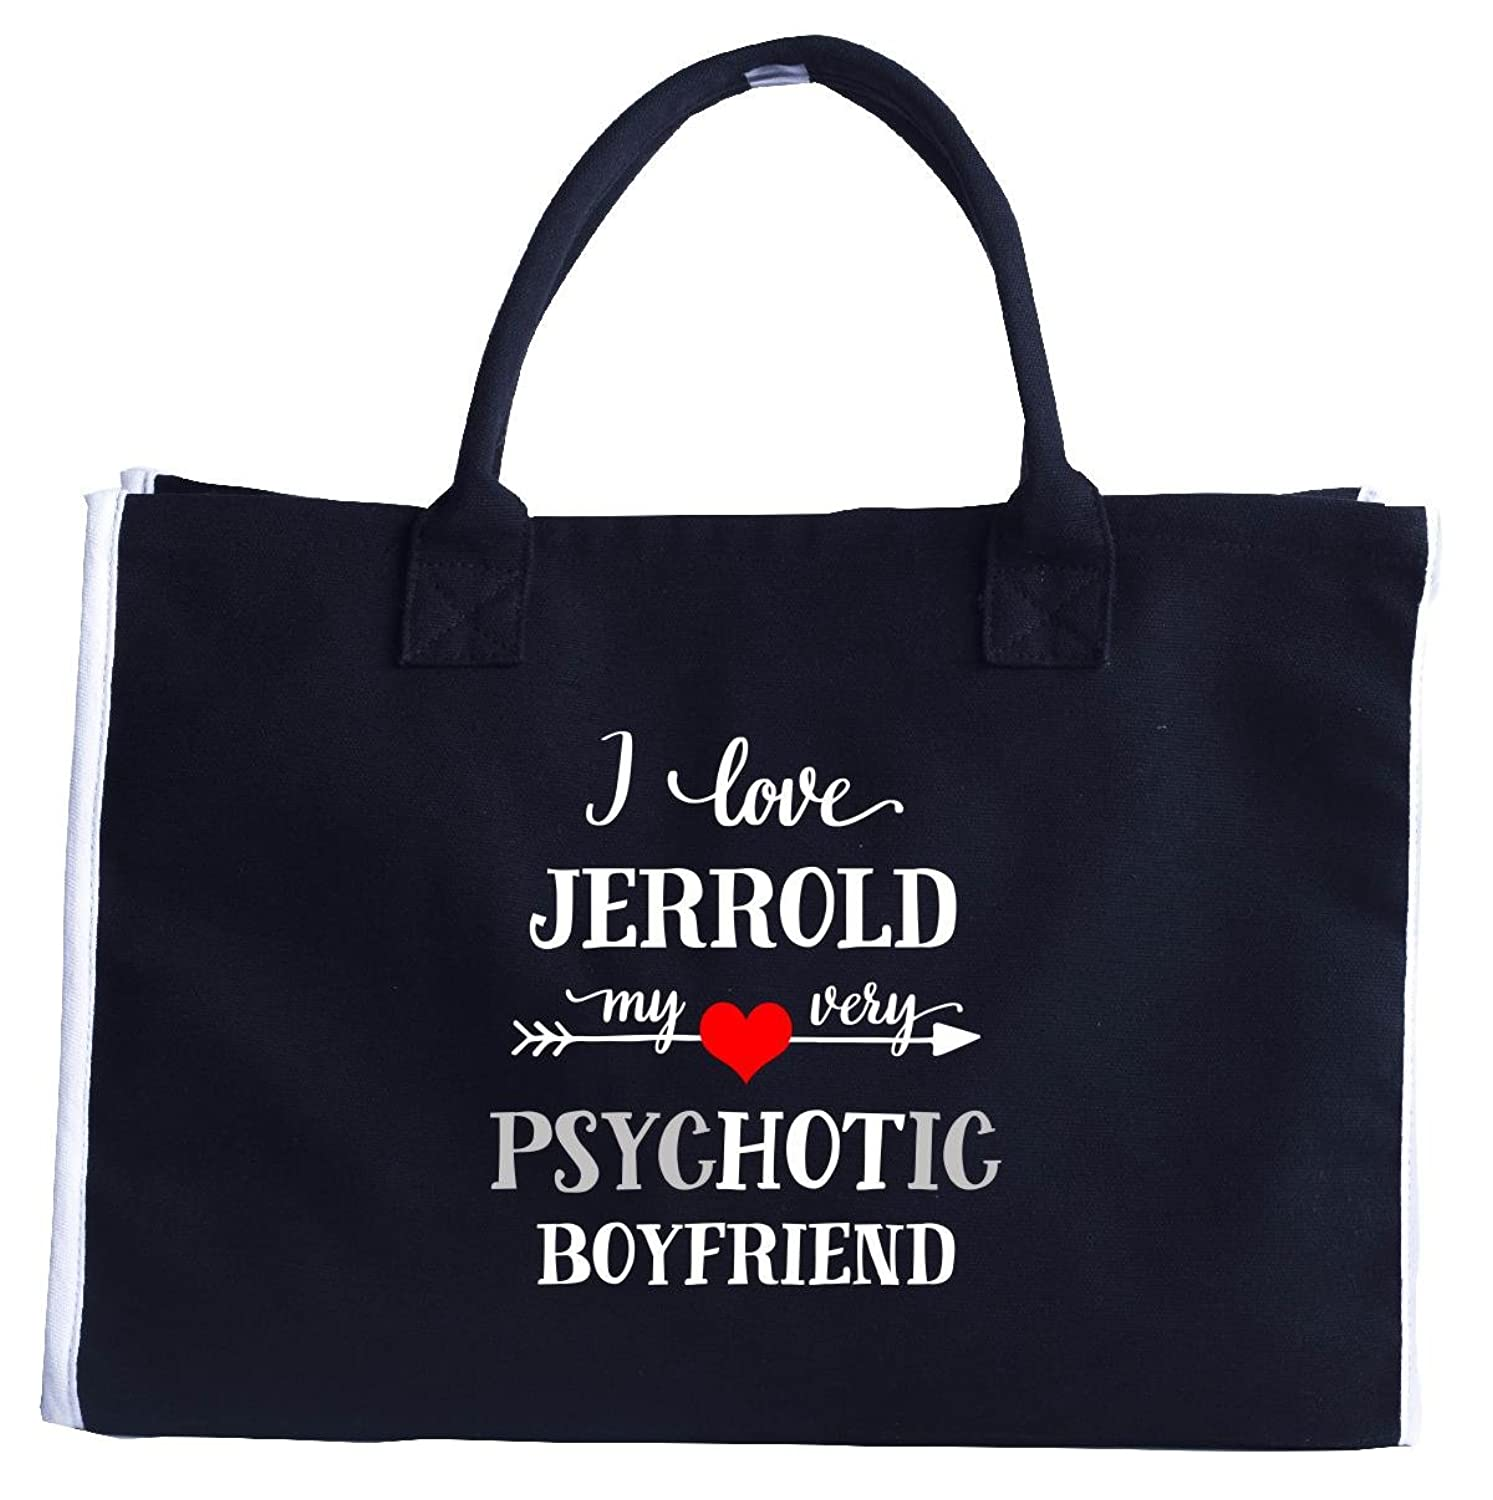 I Love Jerrold My Very Psychotic Boyfriend. Gift For Her - Fashion Tote Bag